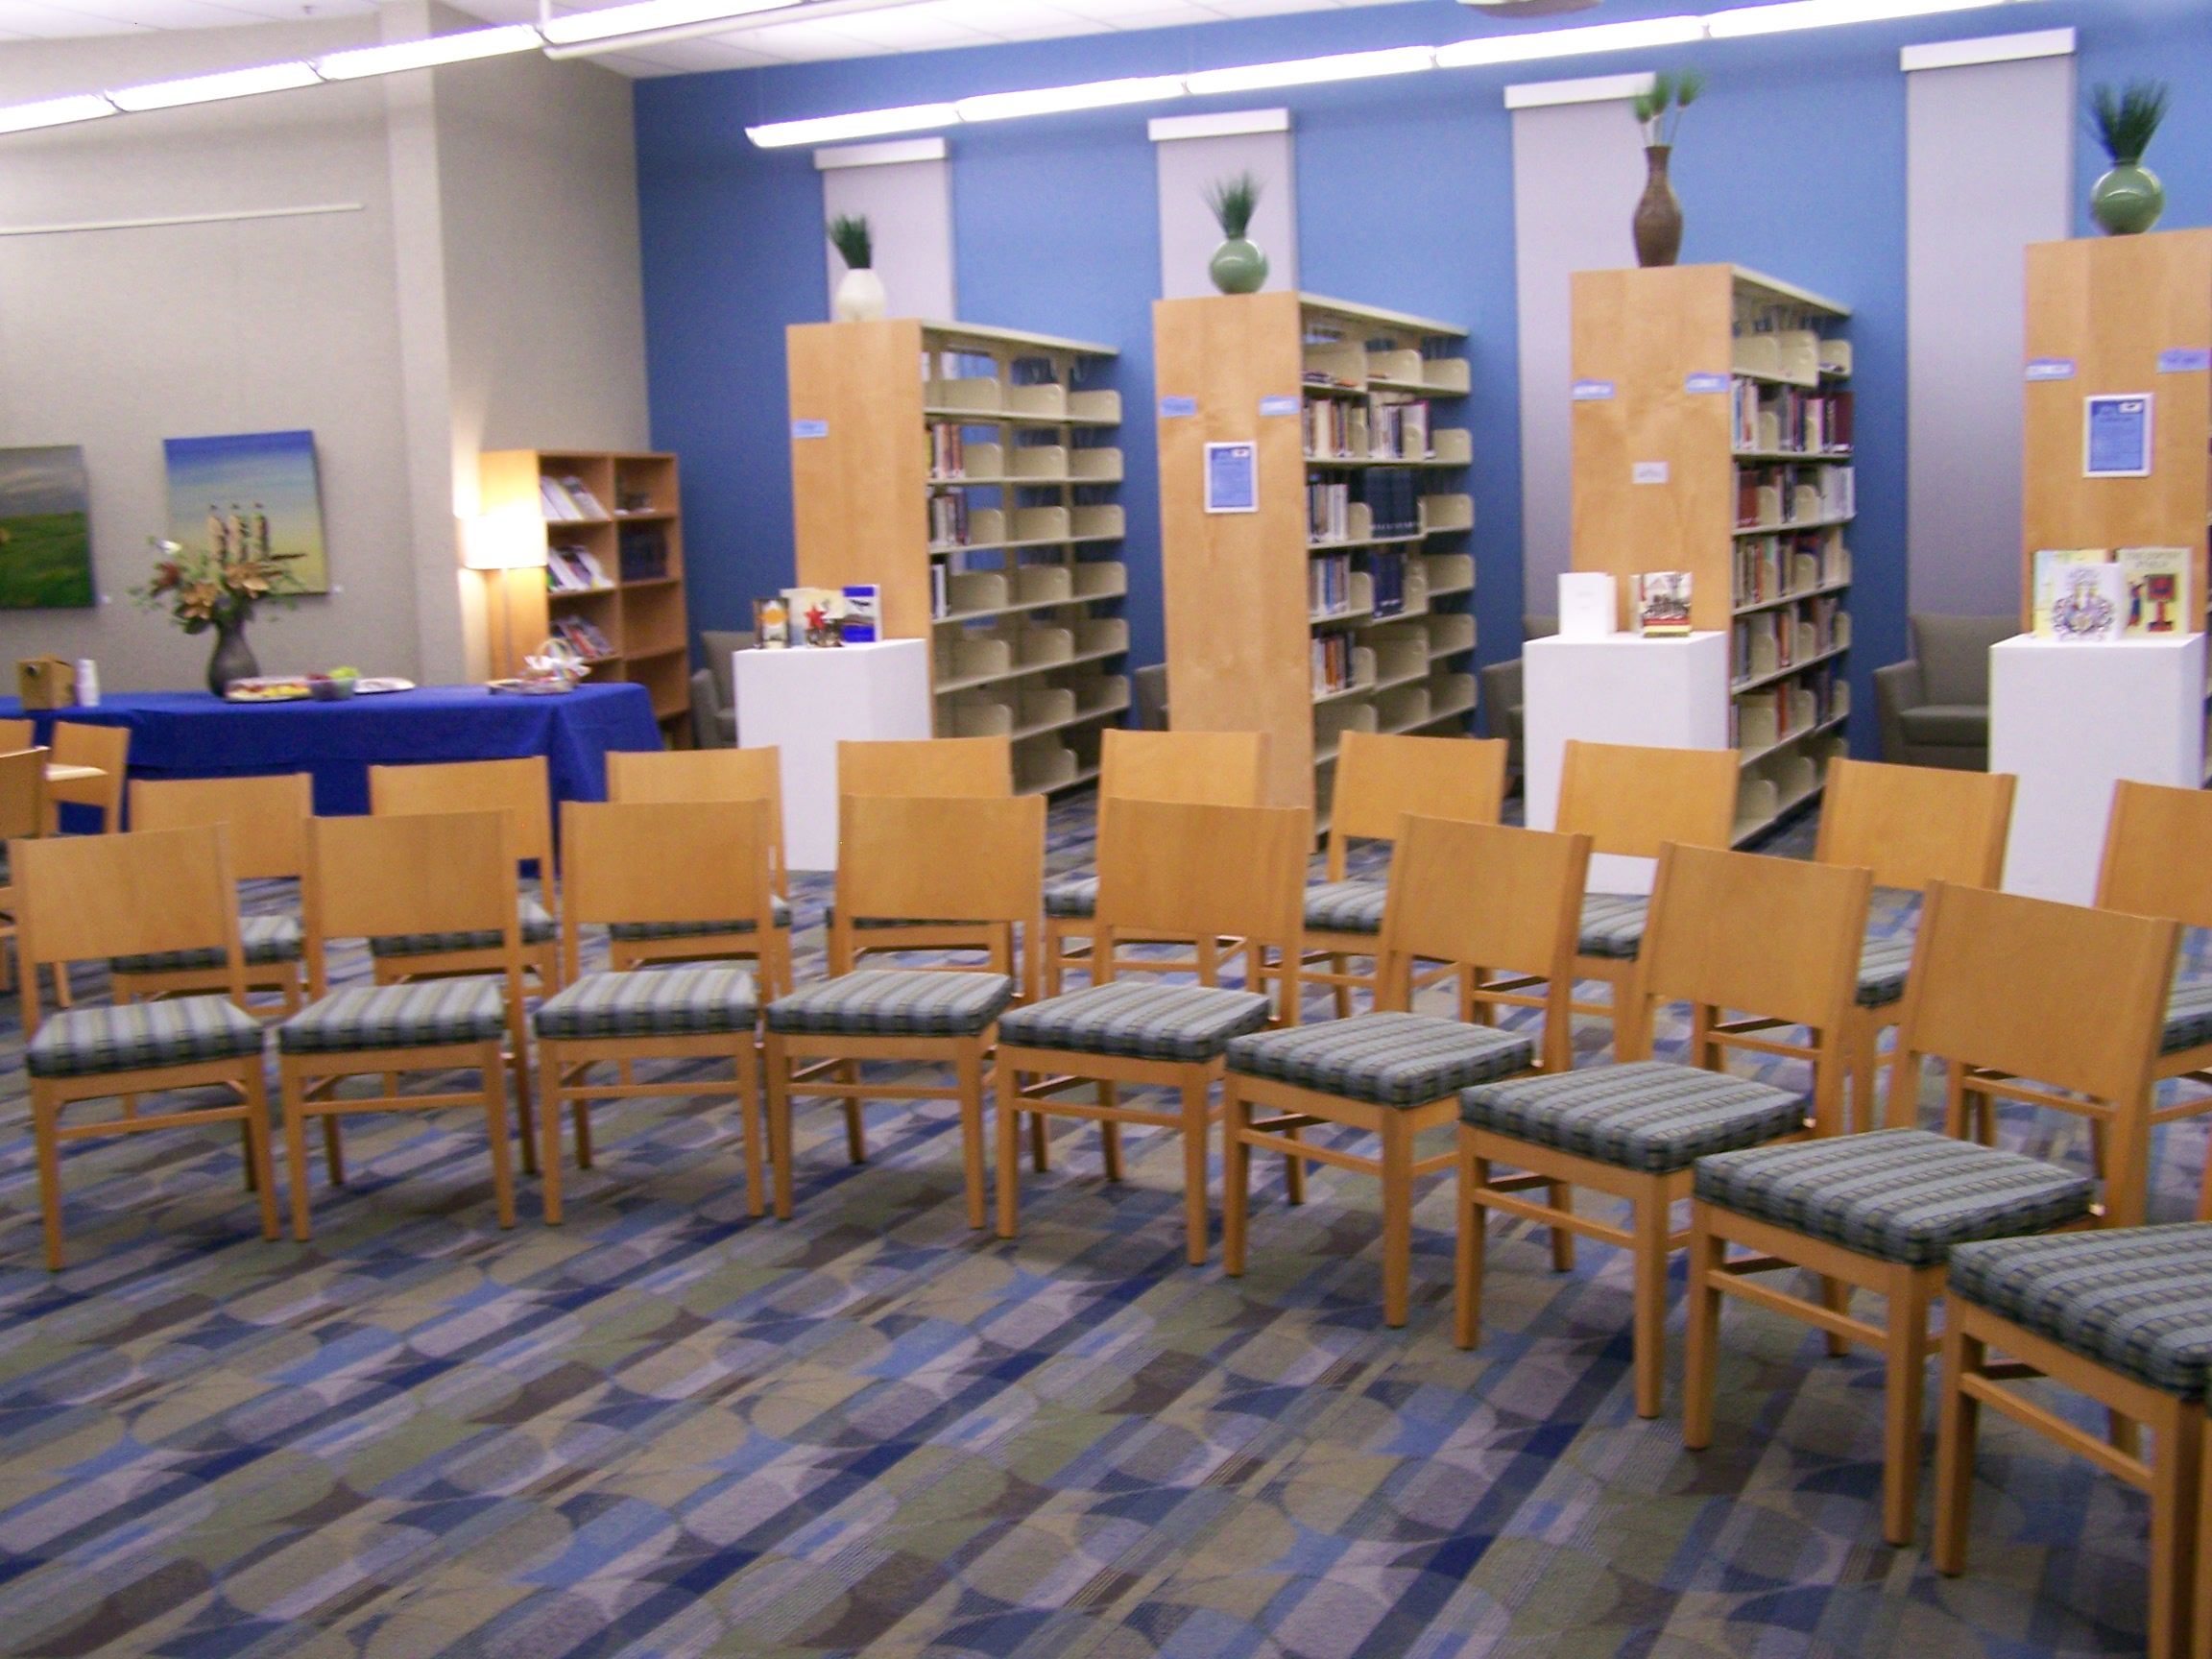 The Library Gallery